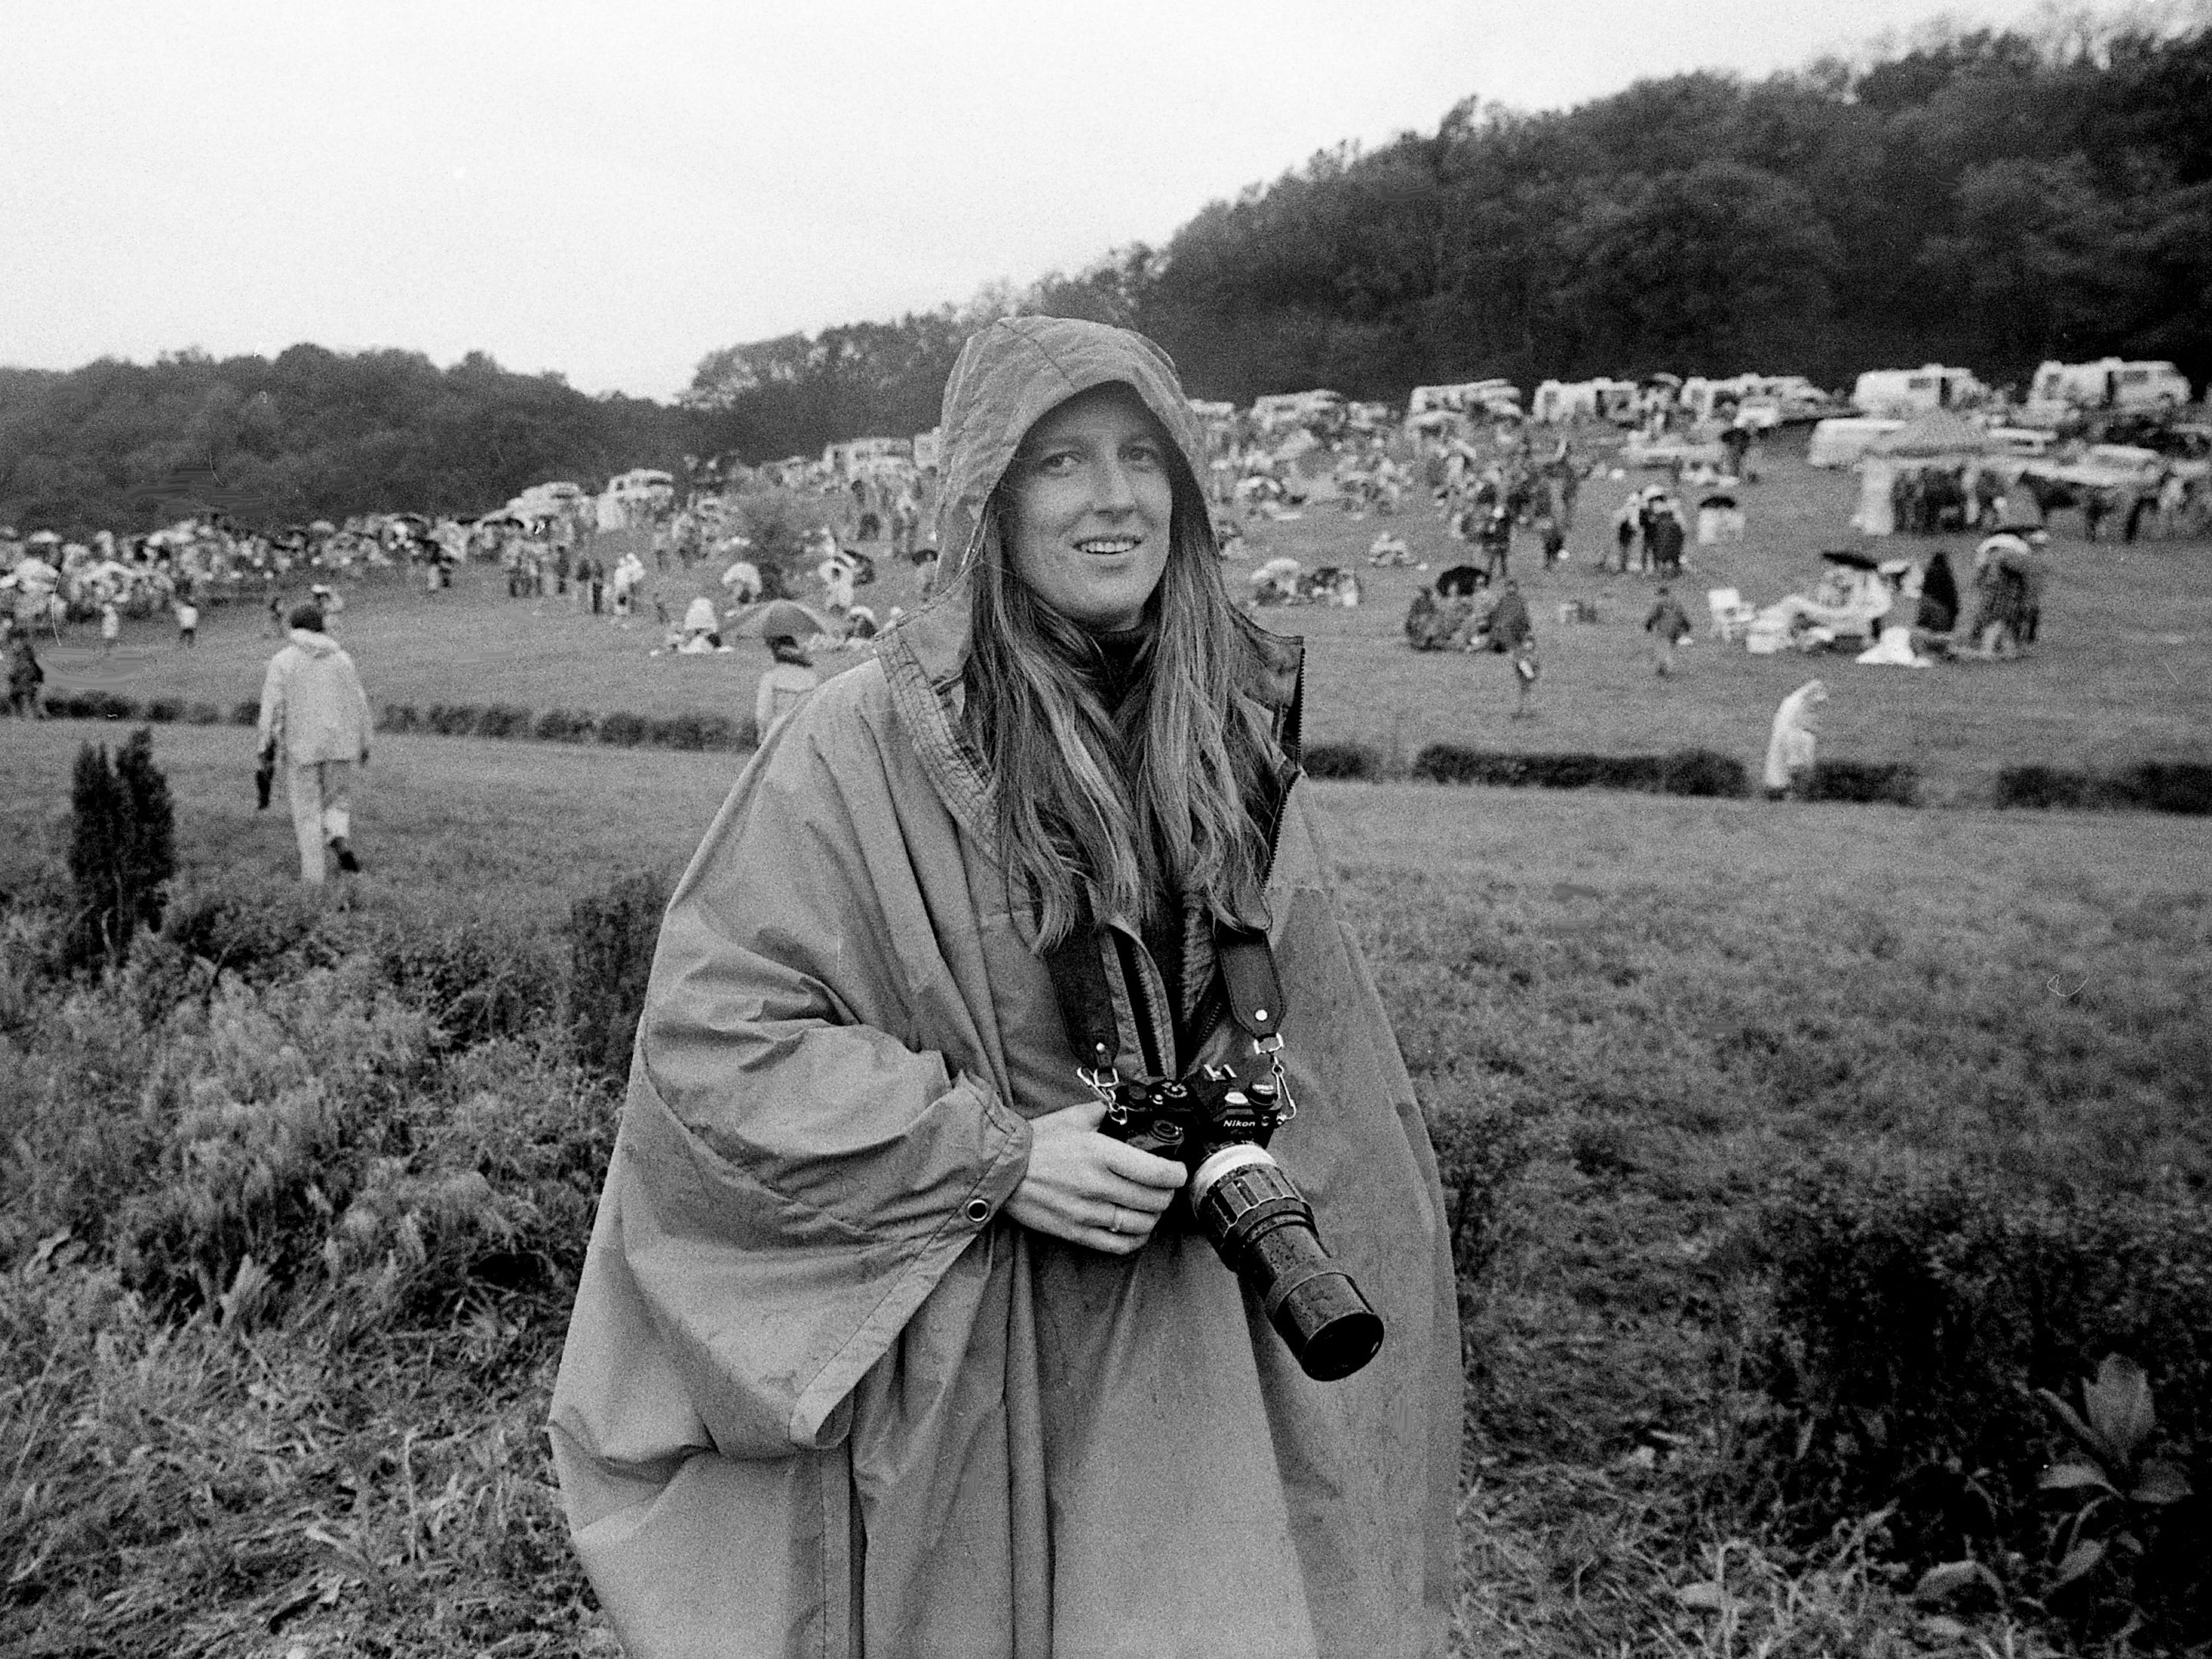 Tennessean staff photographer Nancy Warnecke is protected from the chilly rain as she covers the 37th annual Iroquois Steeplechase on May 13, 1978.